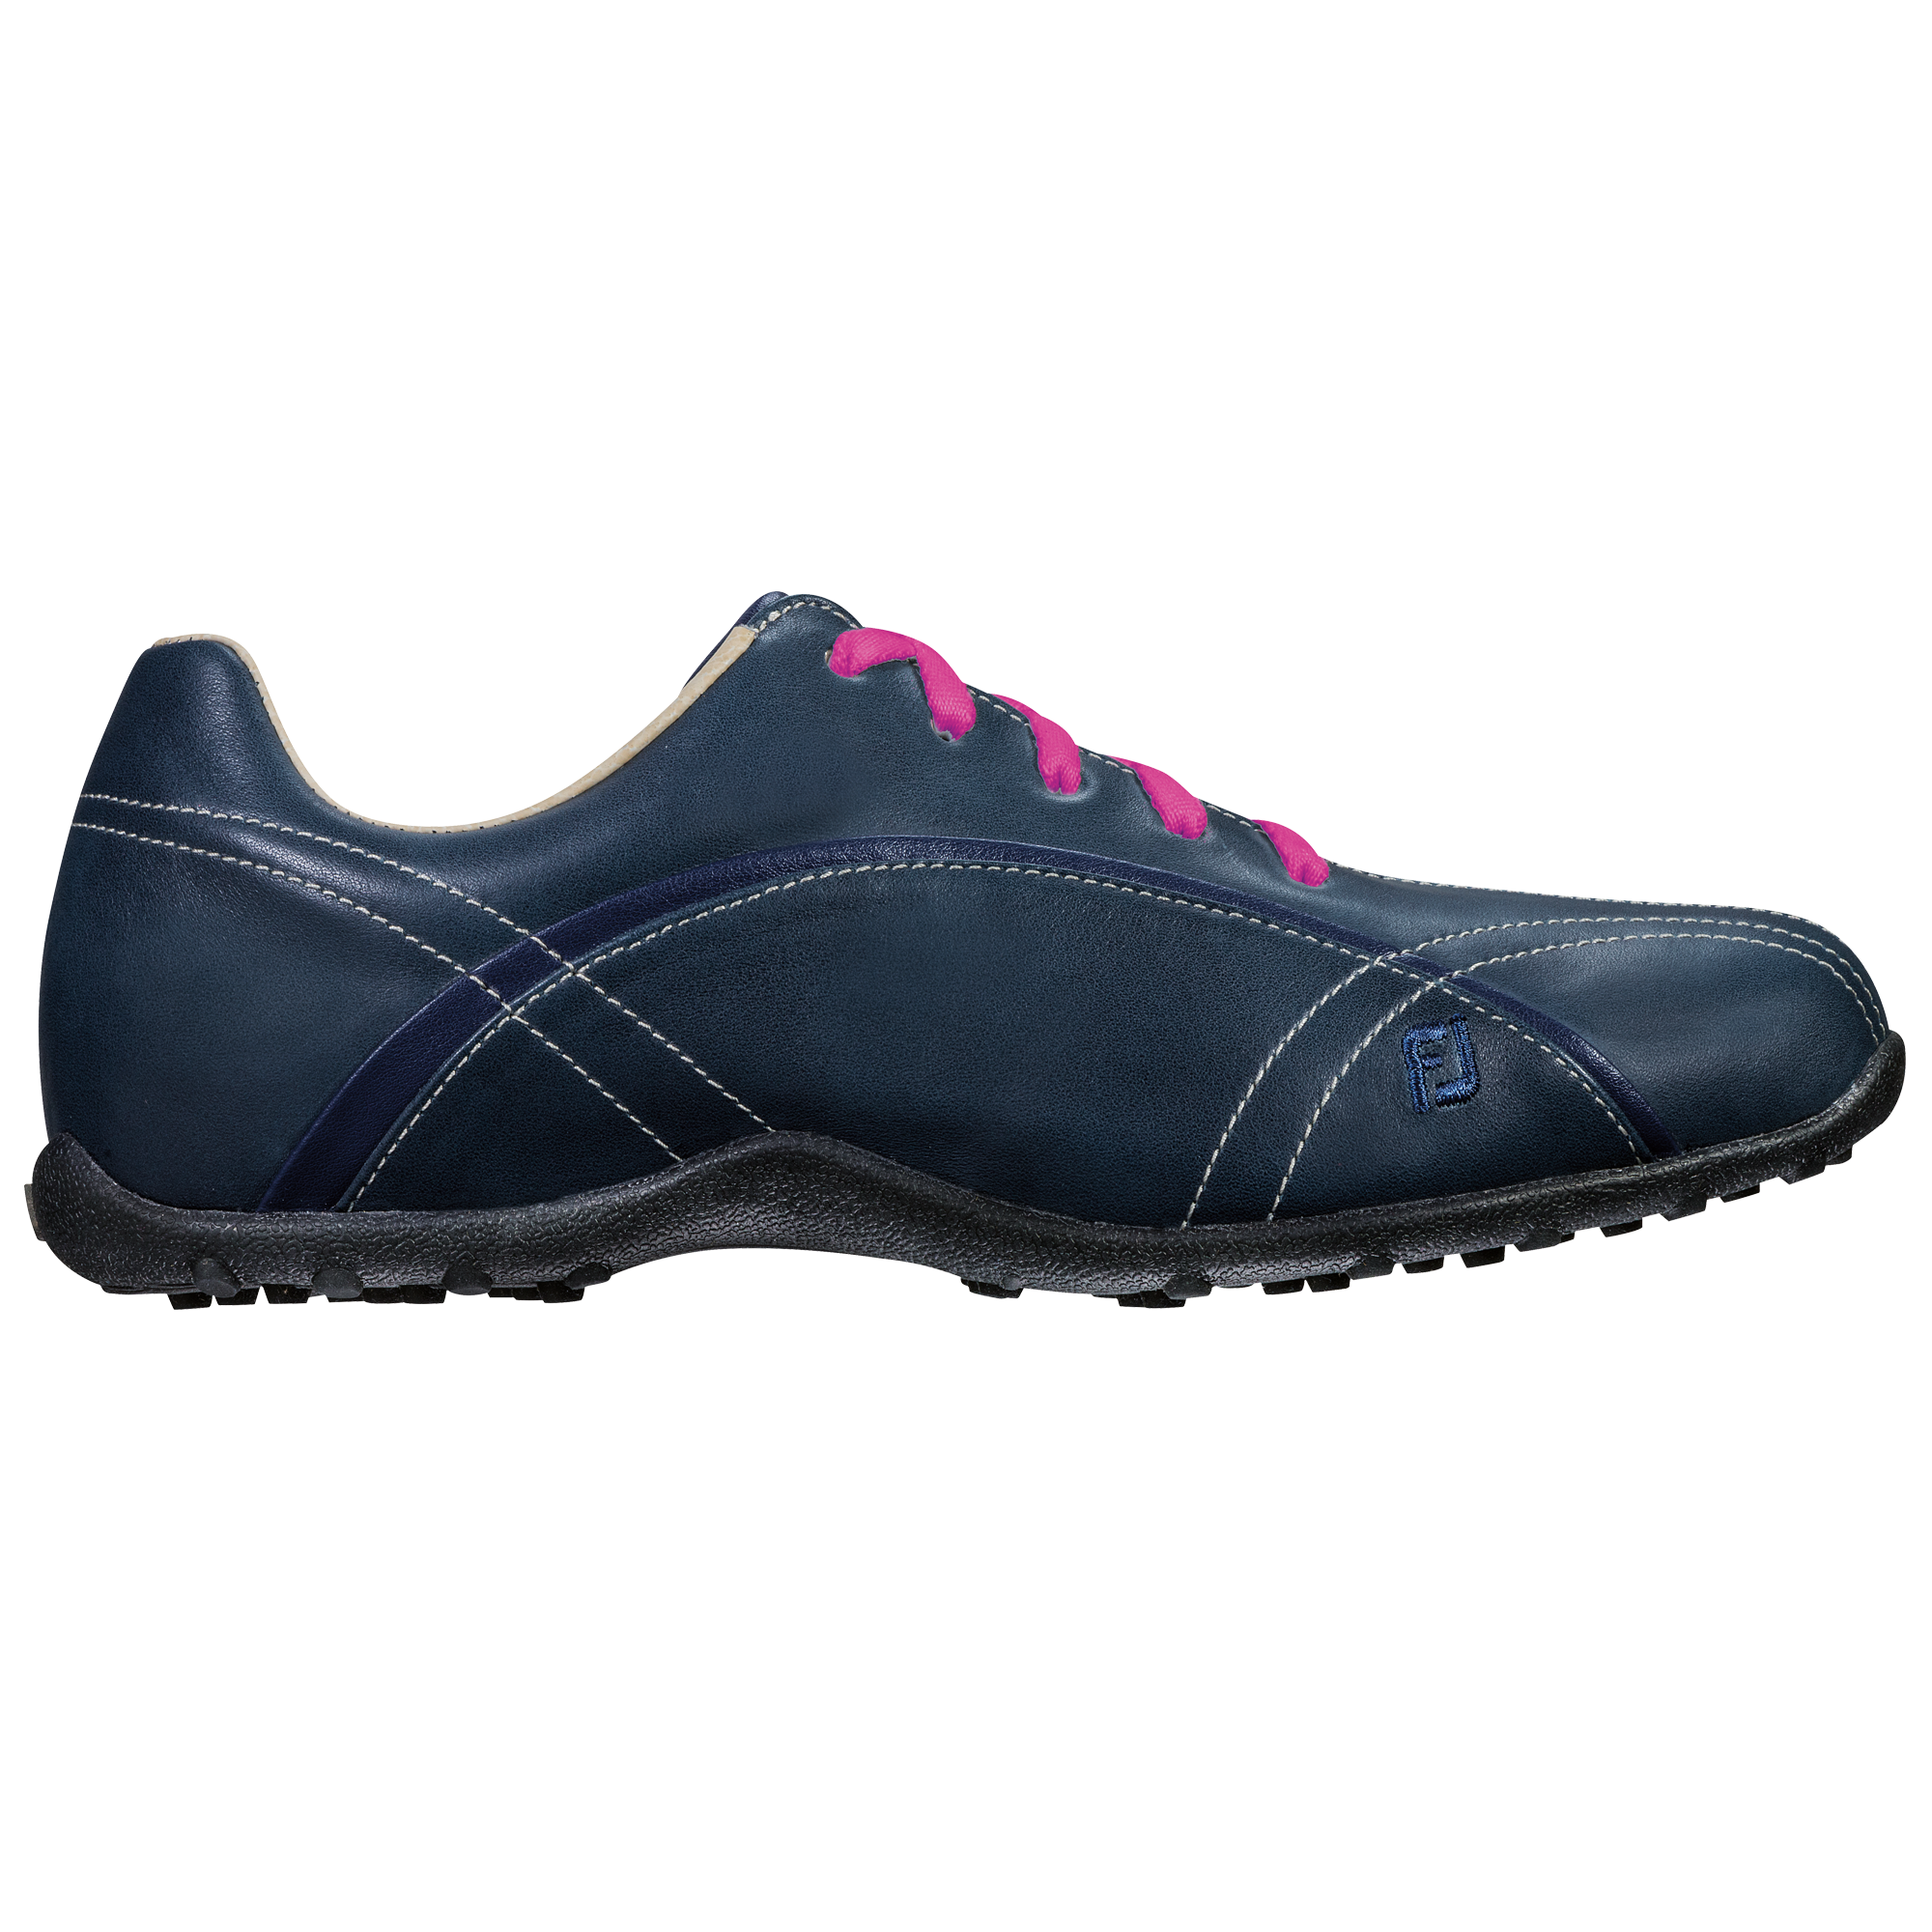 Casual Collection Women's Golf Shoes